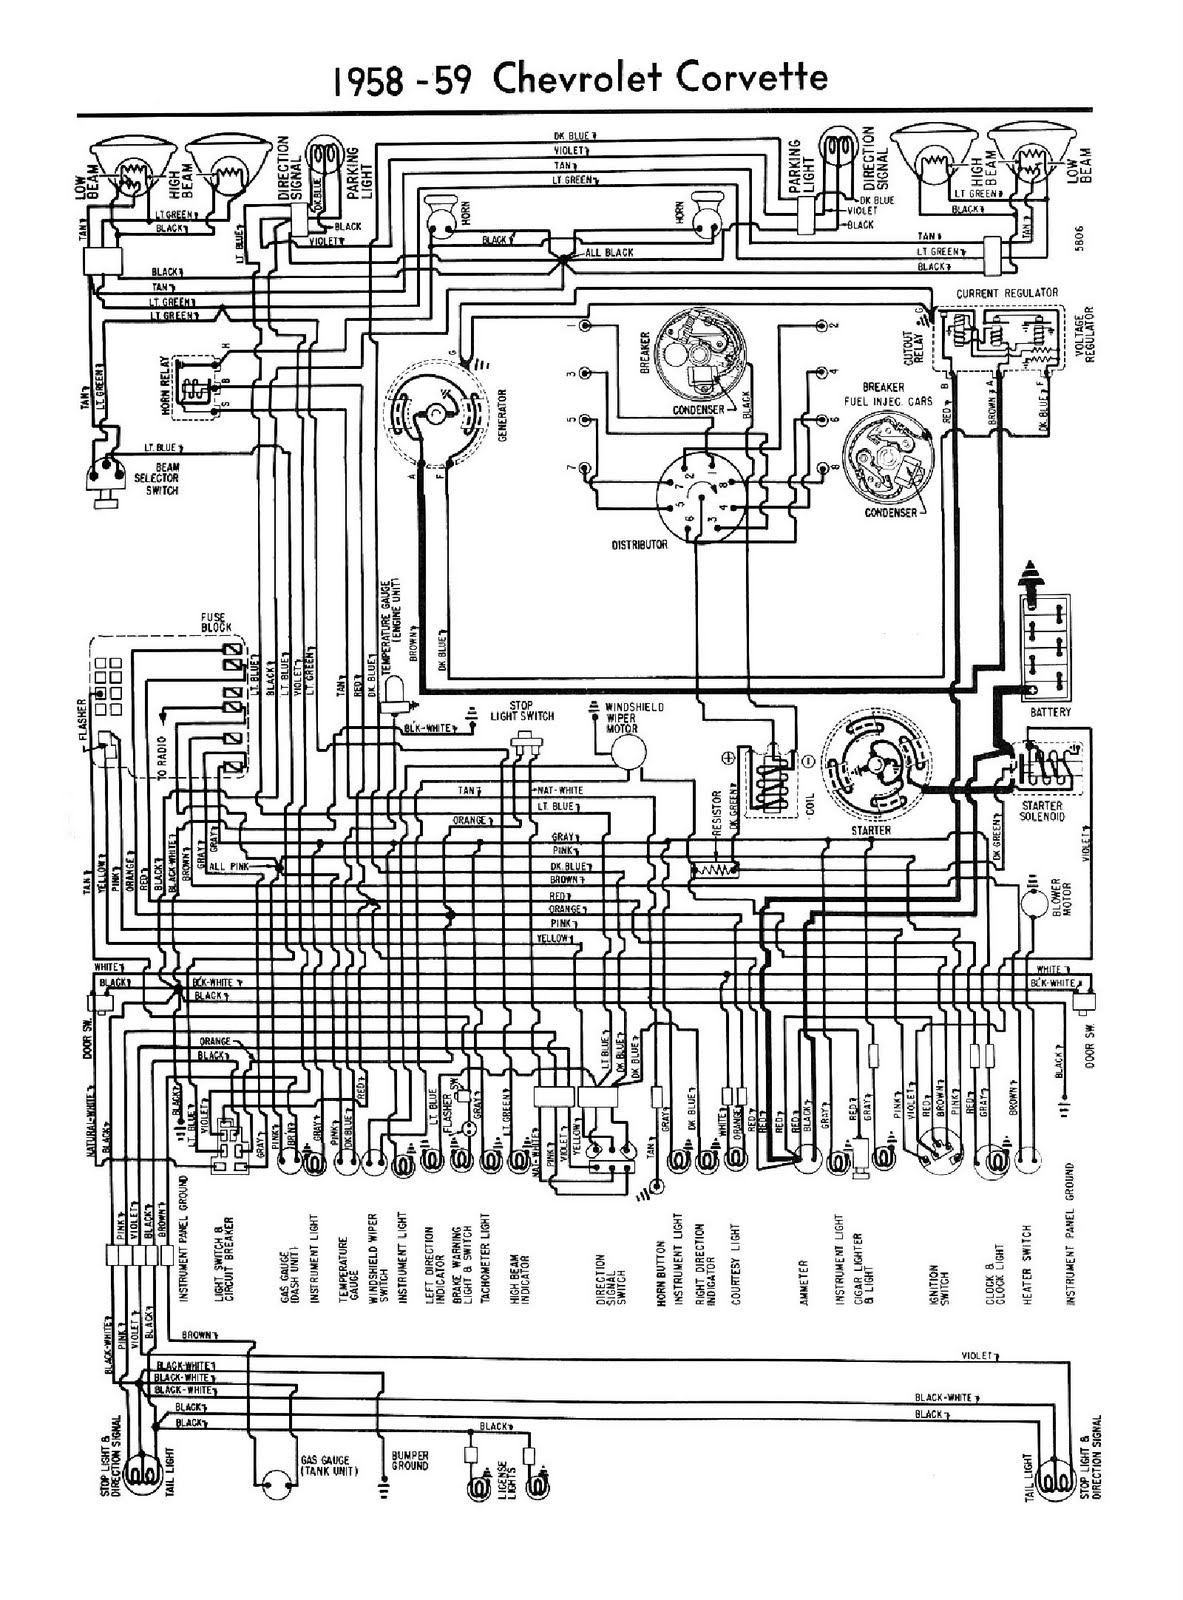 1958 1959 chevrolet corvette wiring diagram 1972 corvette dash wire harness guide with fuse box with air 1959 cadillac 390 engine wiring diagram at mifinder.co